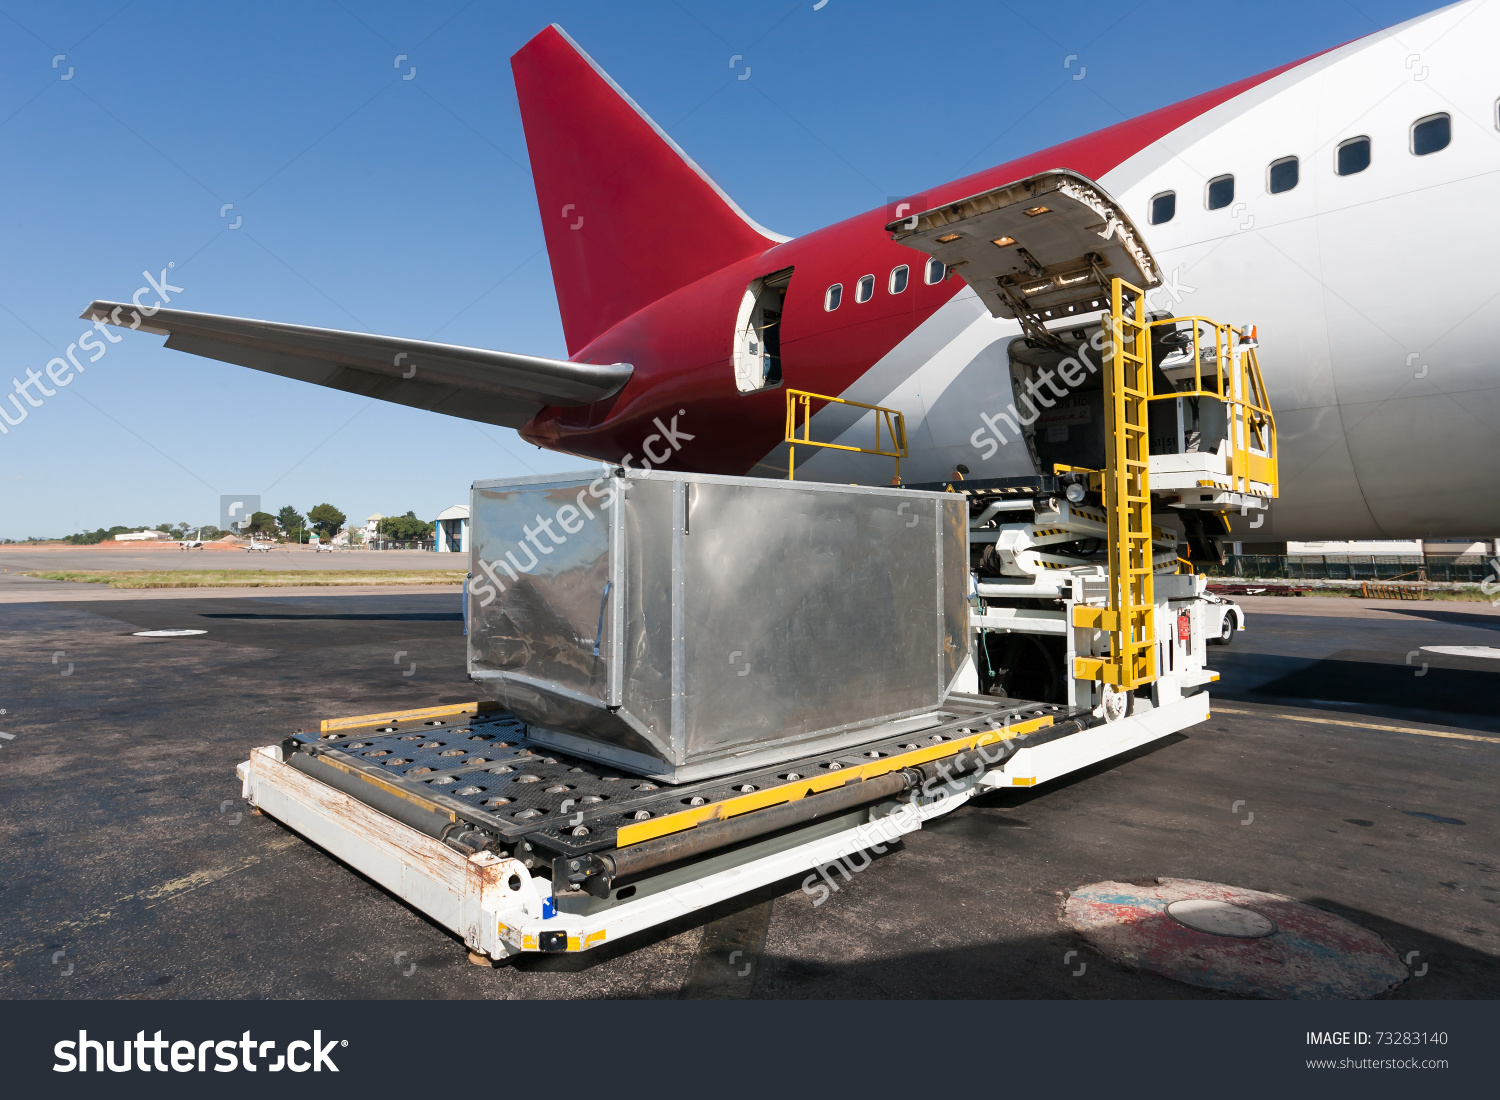 Cargo plane loading clipart jpg library Loading Platform Air Freight Aircraft Stock Photo 73283140 ... jpg library